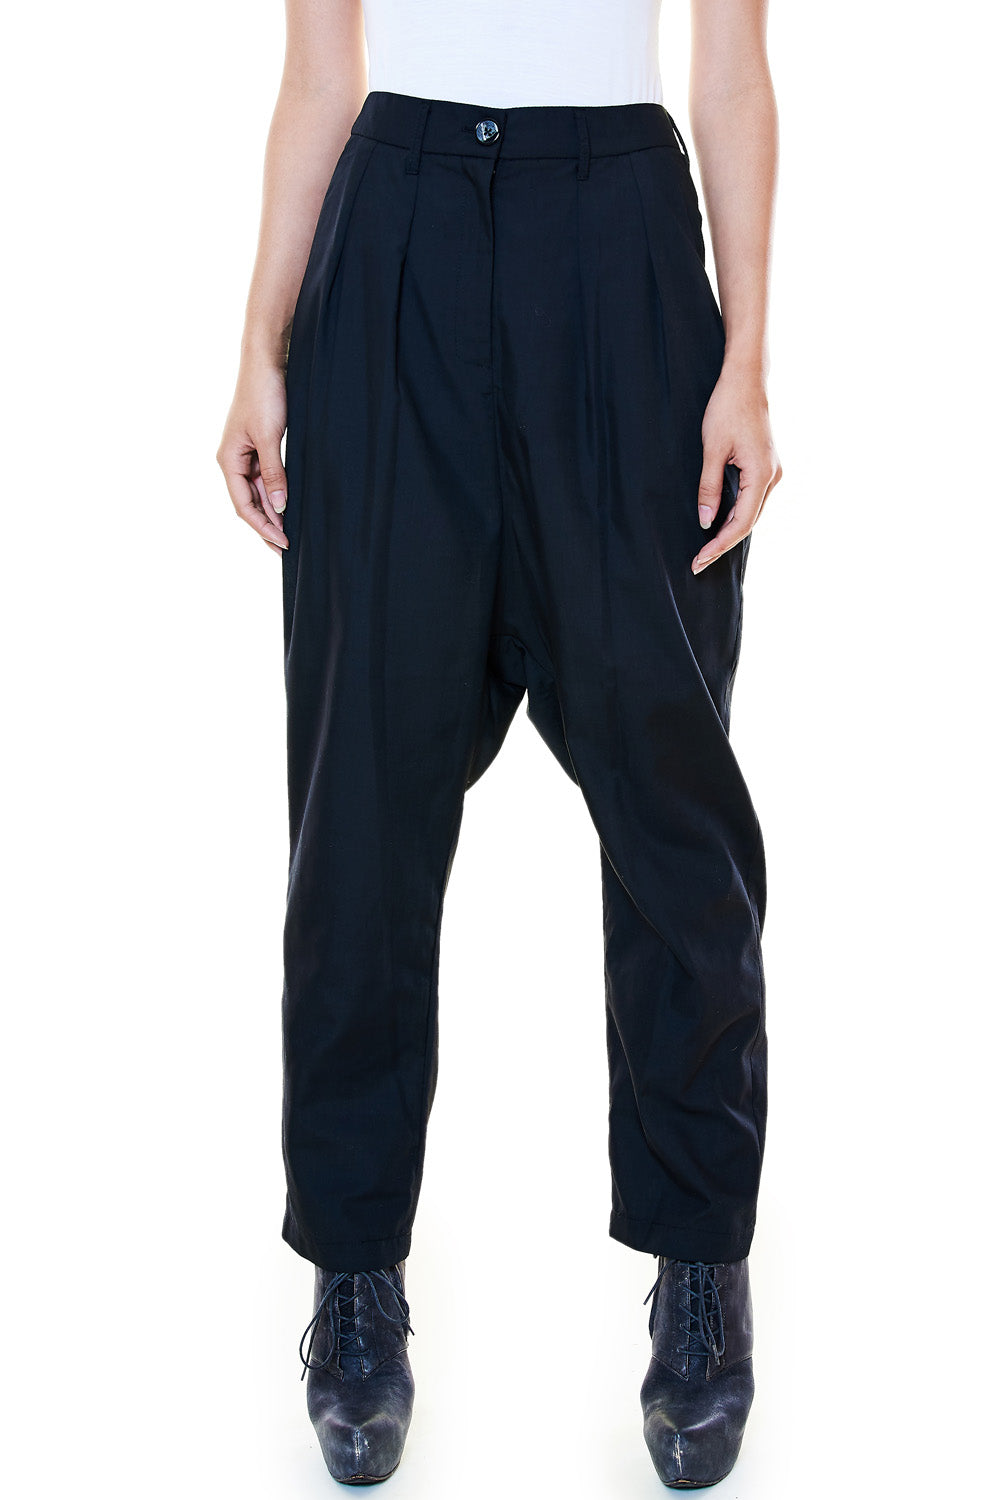 Black Crepe Trousers - casacomostyle